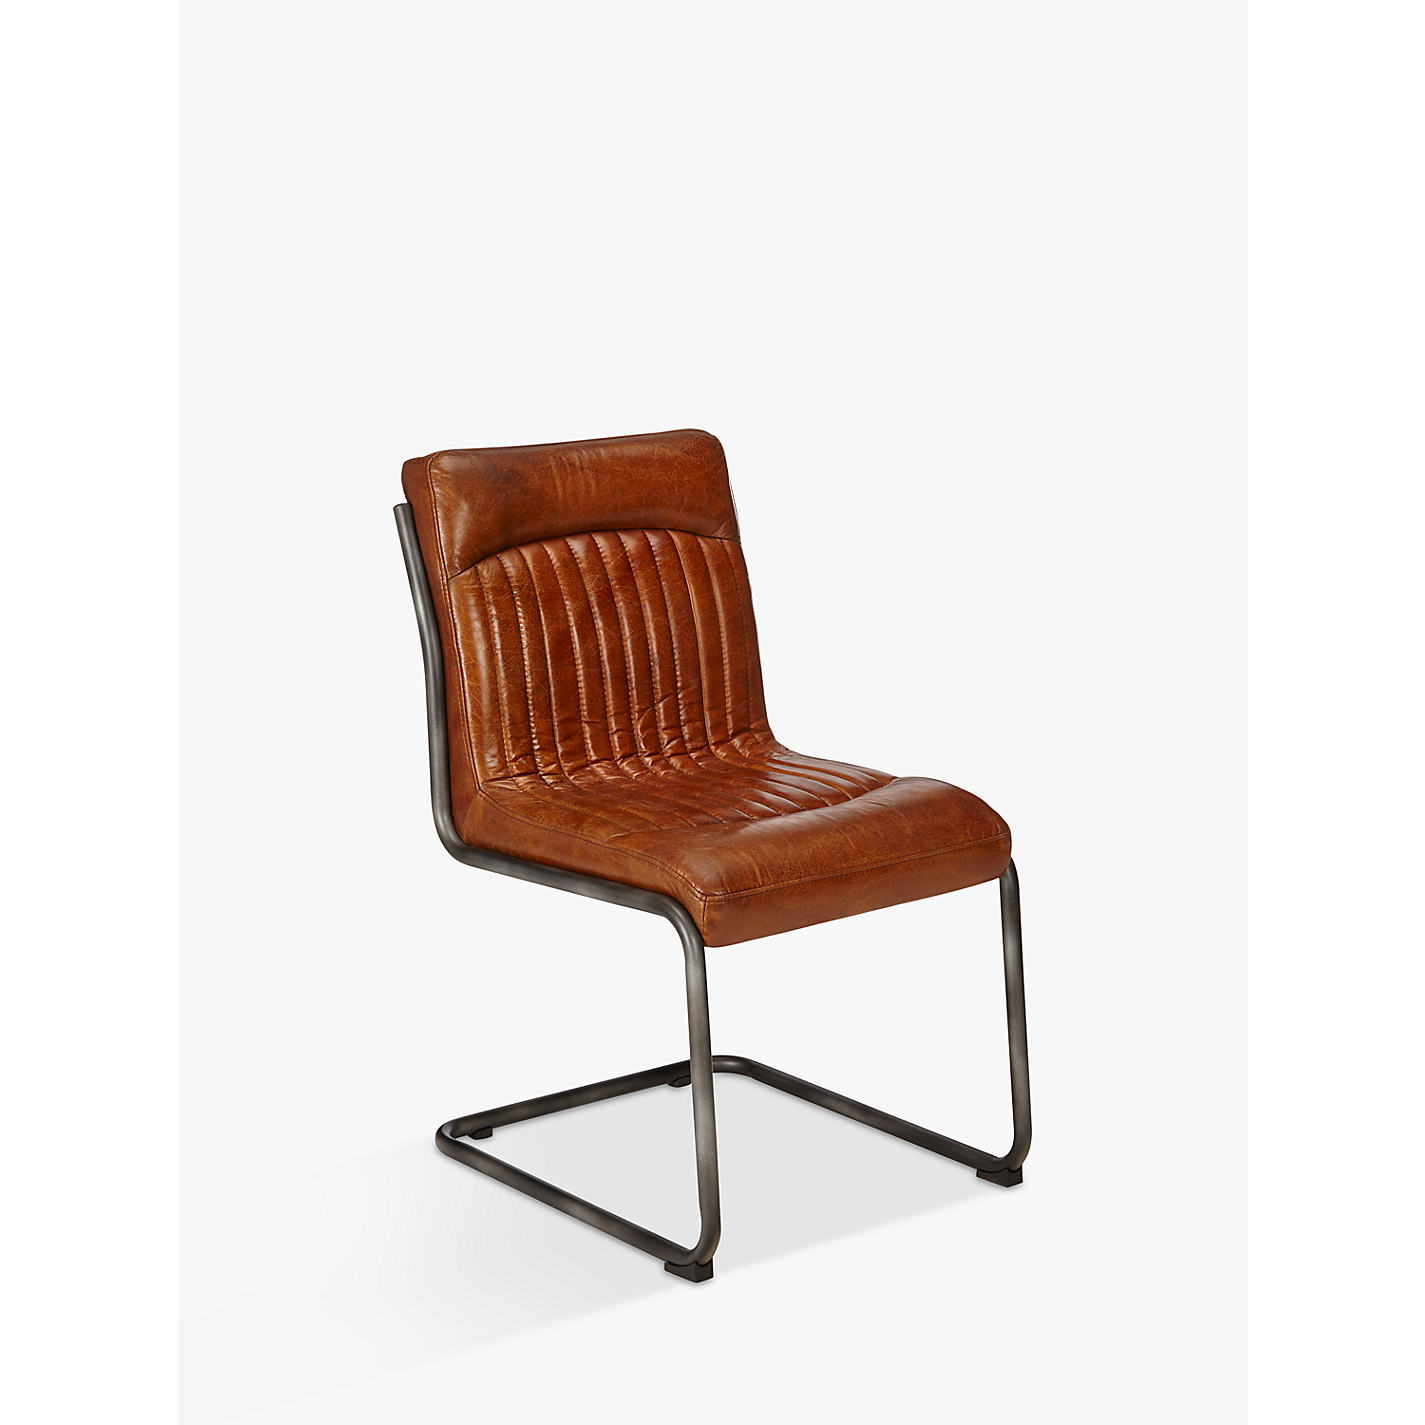 office chairs john lewis. buy hudson living capri leather chair online at johnlewiscom office chairs john lewis d